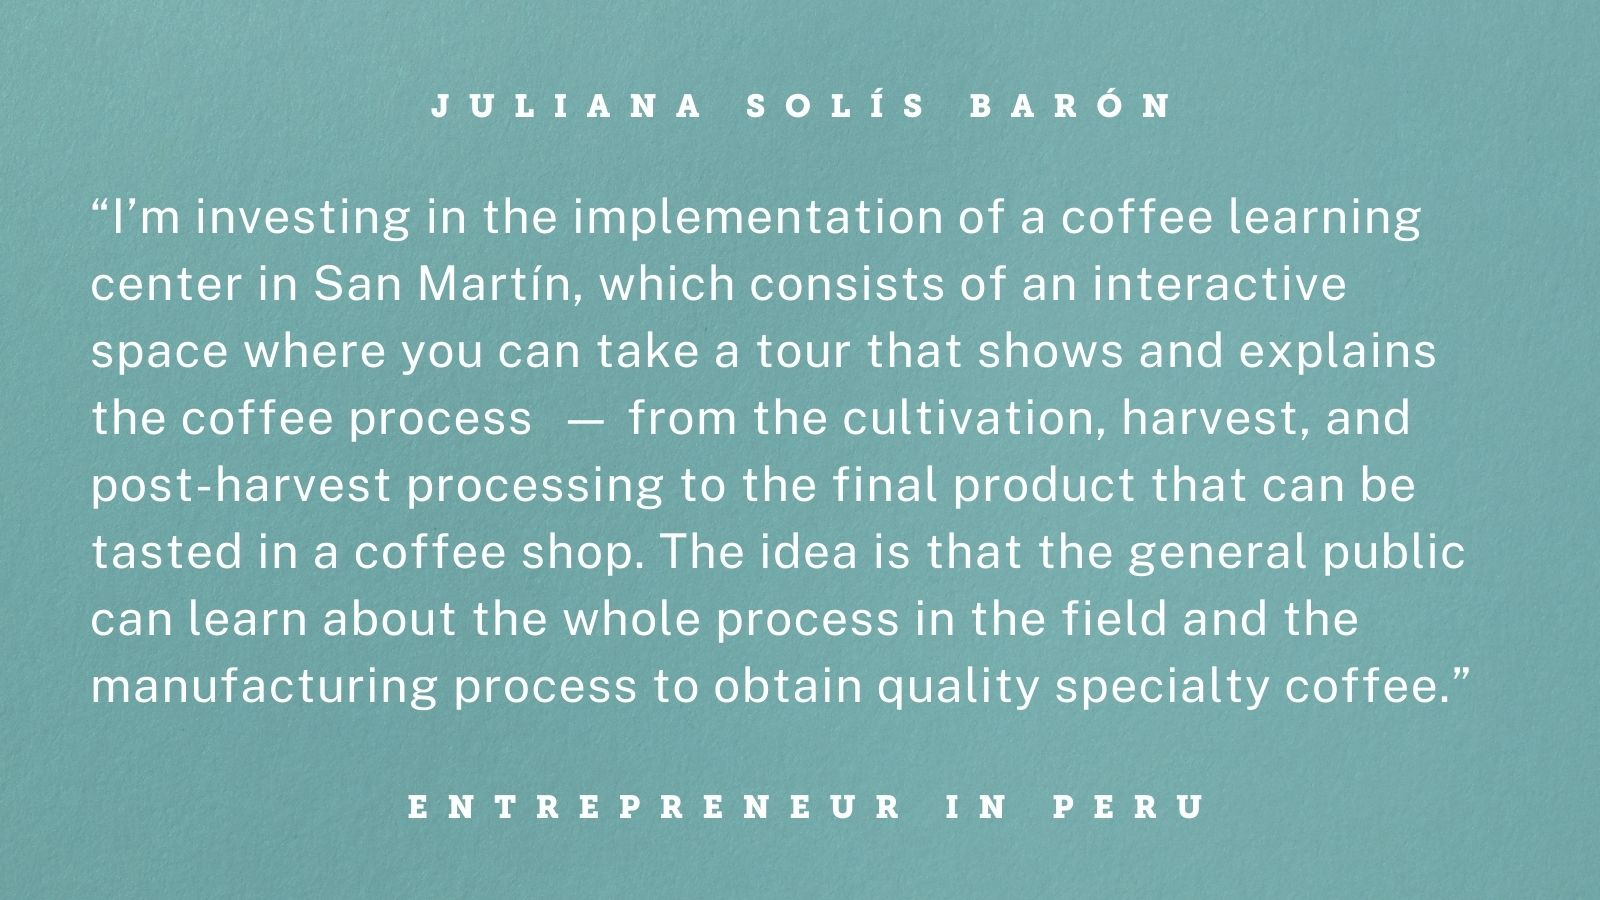 "Quote from an entrepreneur in Peru. Graphic reads: ""I'm investing in the implementation of a coffee learning center in San Martín, which consists of an interactive space where you can take a tour that shows and explains the coffee process -- from the cultivation, harvest, and post-harvest processing to the final product that can be tasted in a coffee shop. The idea is that the general public can learn about the whole process in the field and the manufacturing process to obtain quality specialty coffee."""